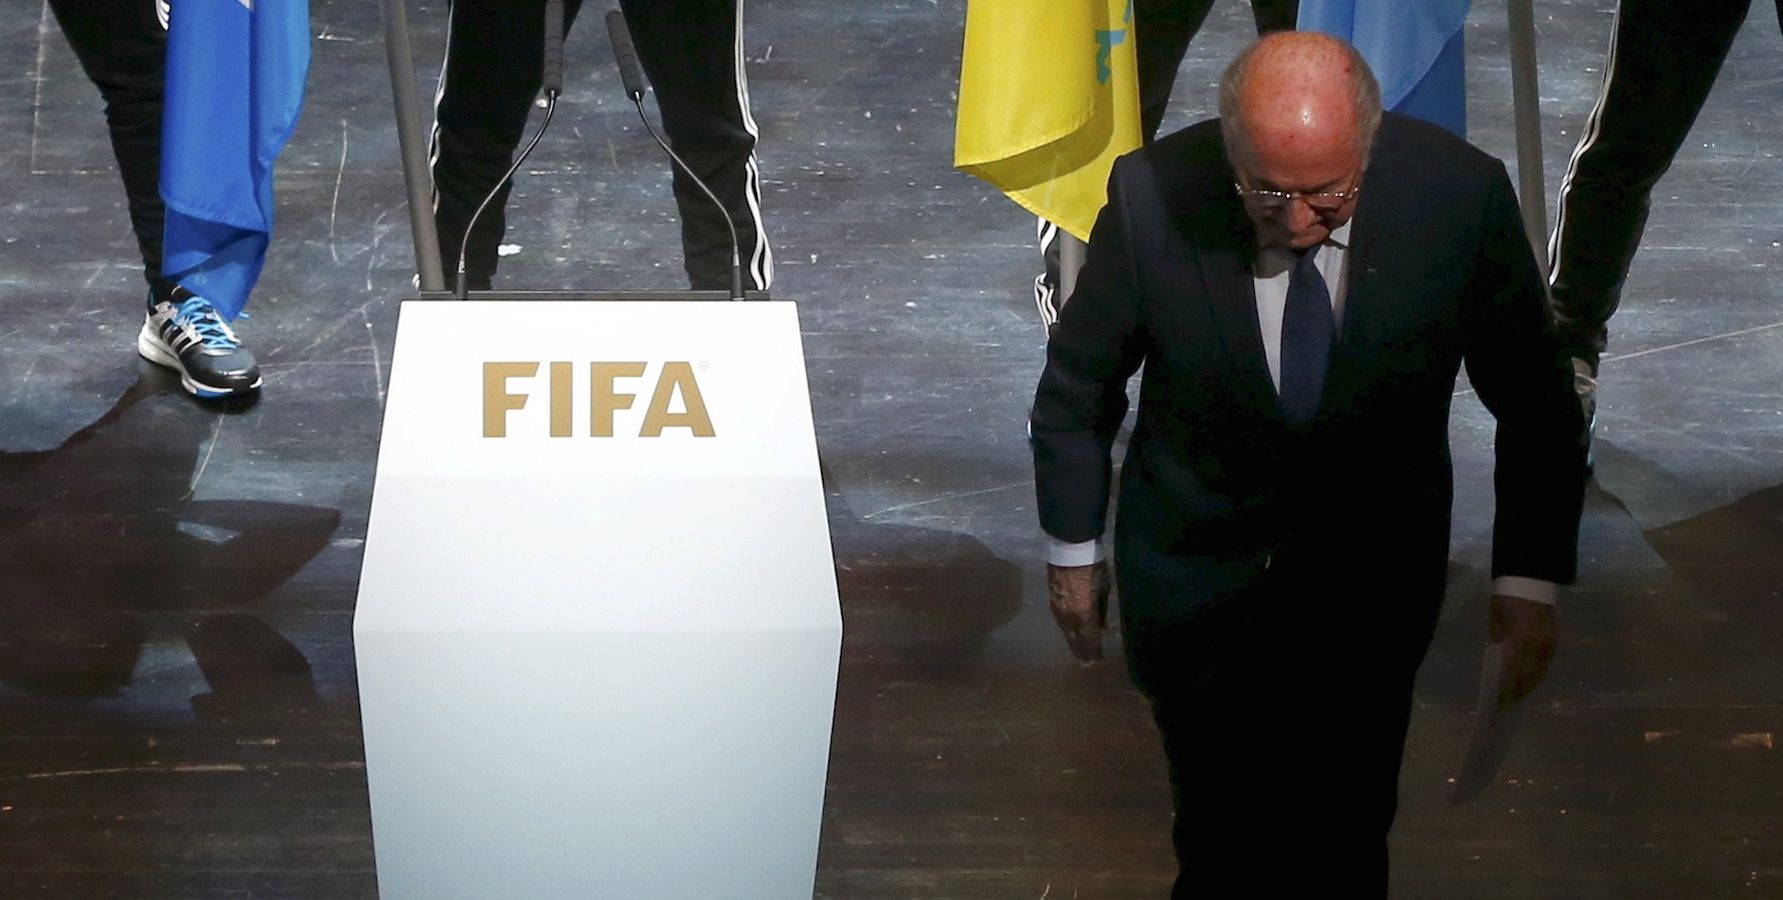 FIFA President Sepp Blatter leaves the stage after making a speech during the opening ceremony of the 65th FIFA Congress in Zurich, Switzerland, May 28, 2015. Blatter rejected an emotional plea to resign from one of the world's soccer greats on Thursday as the corruption scandal engulfing the game's governing body drew warnings from sponsors and political leaders. REUTERS/Arnd Wiegmann TPX IMAGES OF THE DAY - RTX1EZ5Q